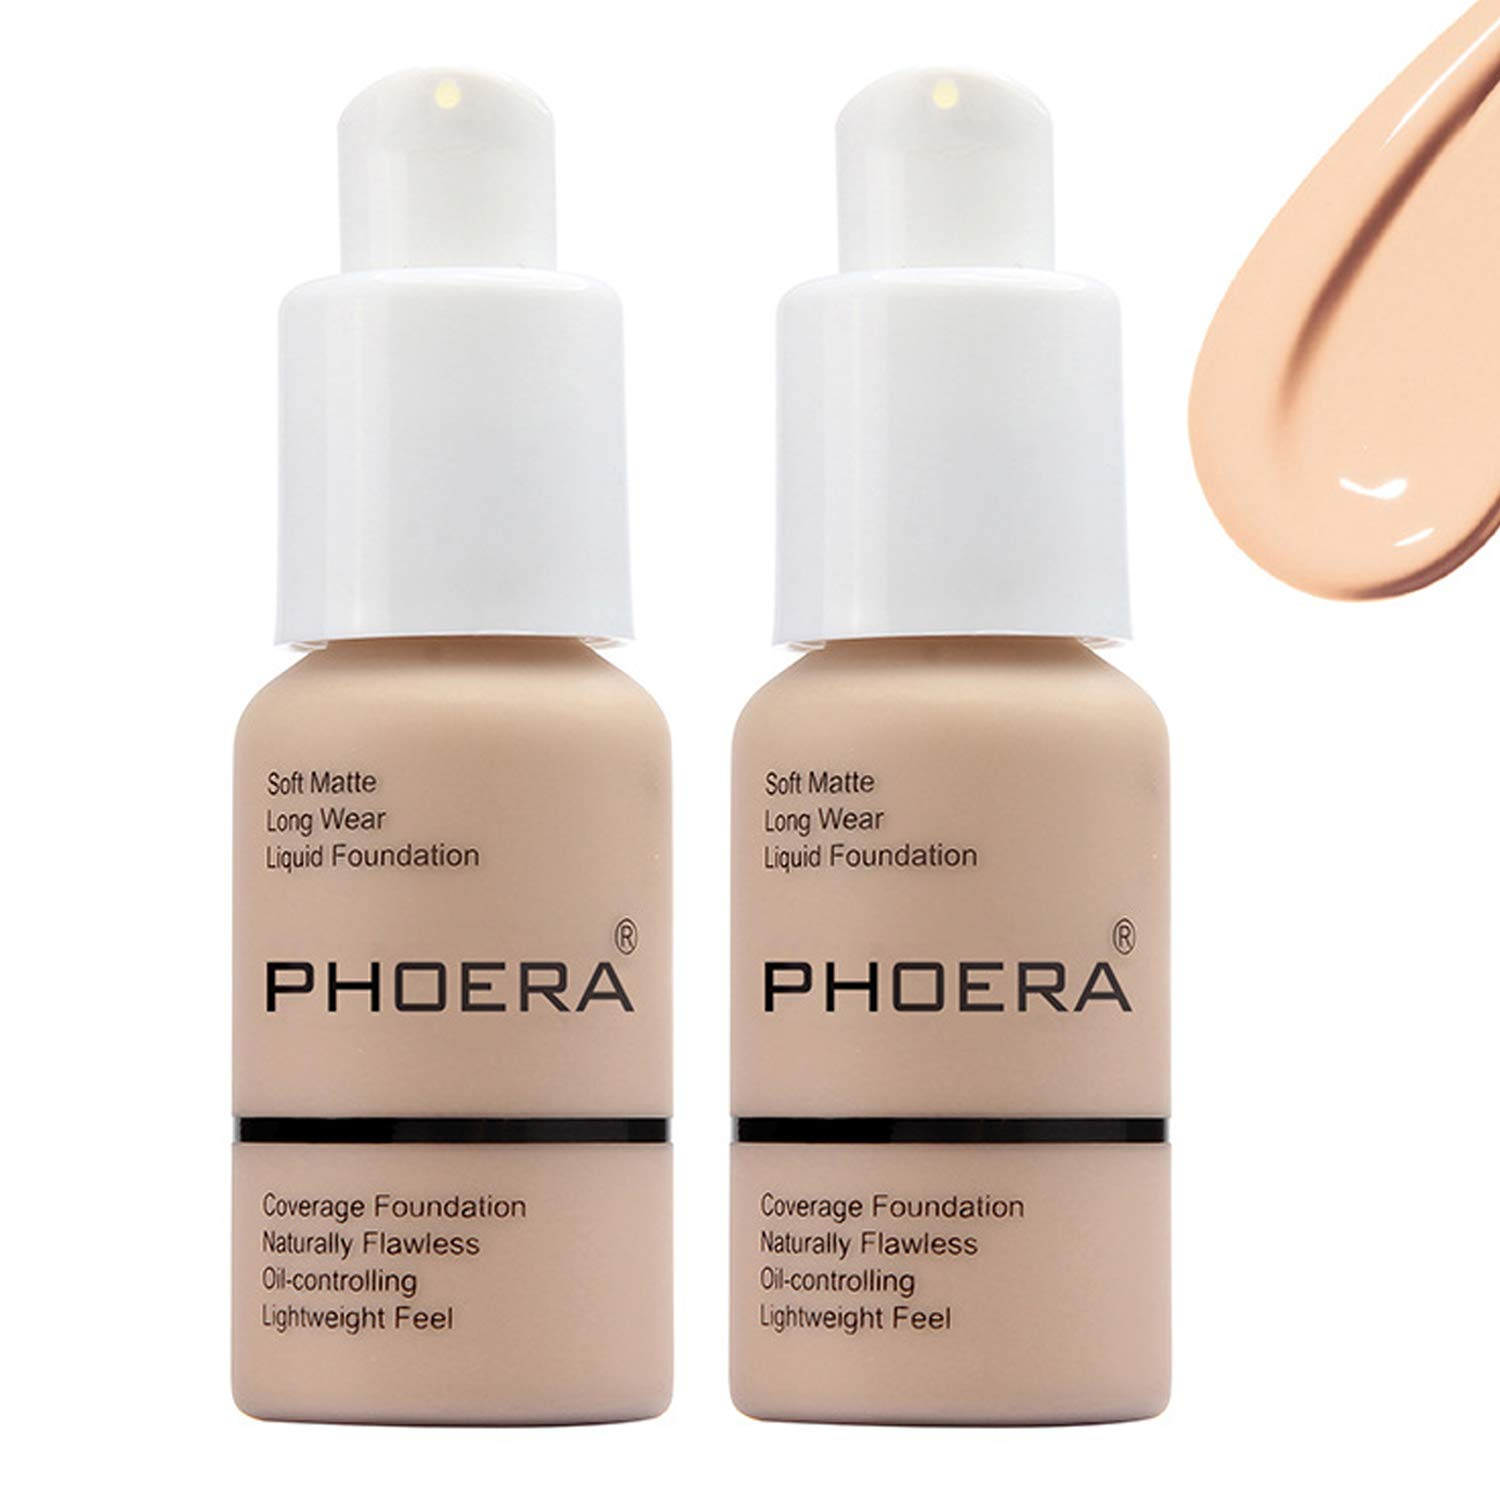 Matte Oil Control Concealer Foundation Cream,Long Lasting Waterproof Matte Liquid Phoera Foundation,102 Nude -30ml